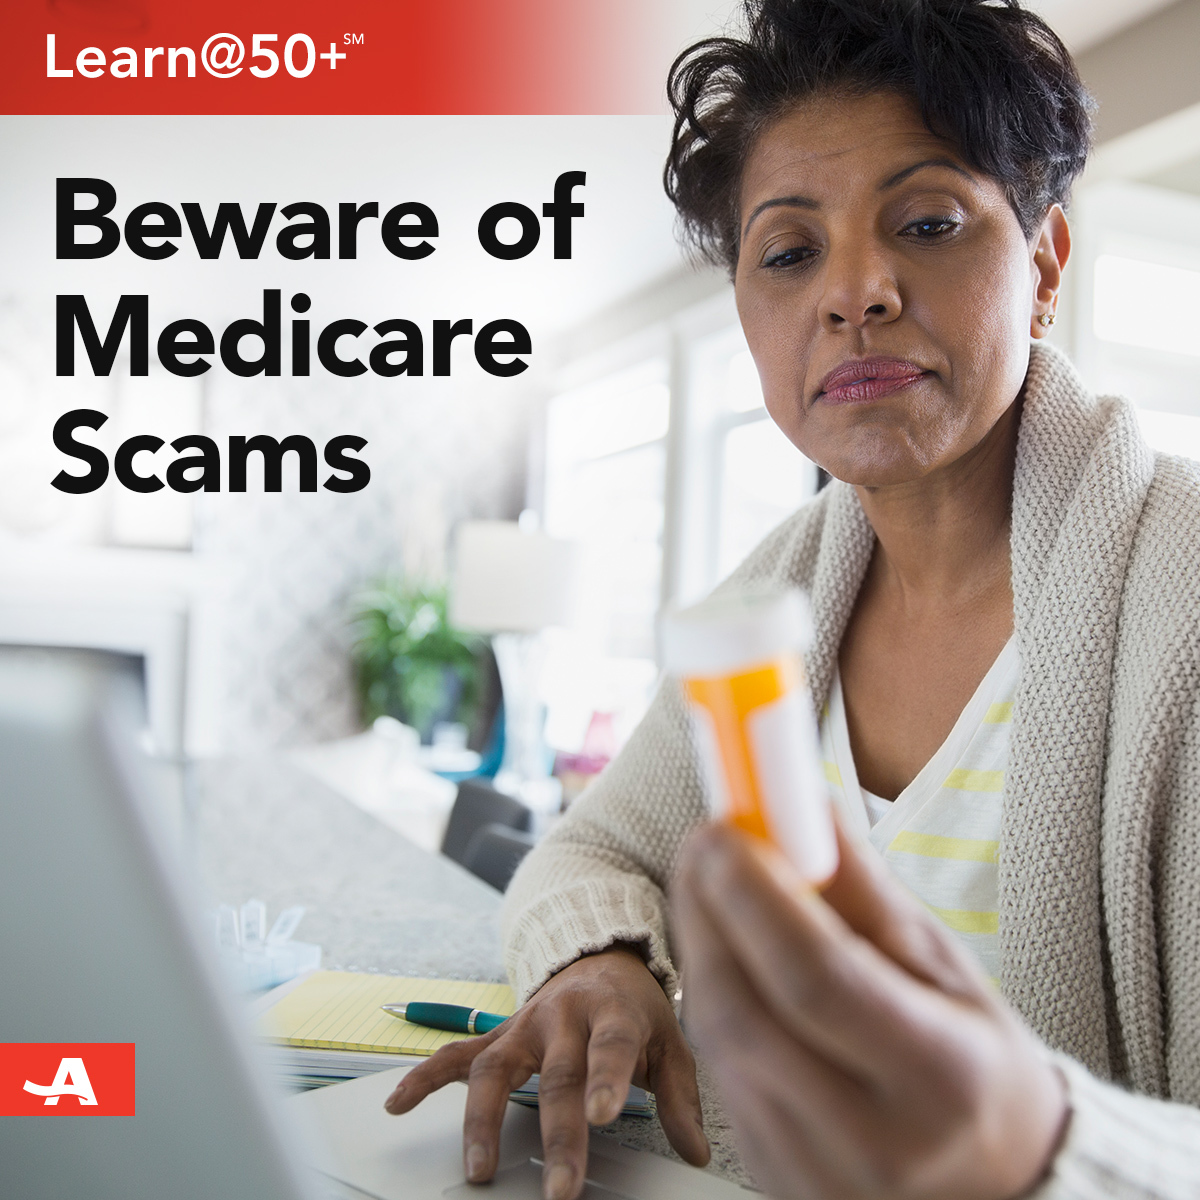 Is It Really Covered by Medicare or Is It a Scam?